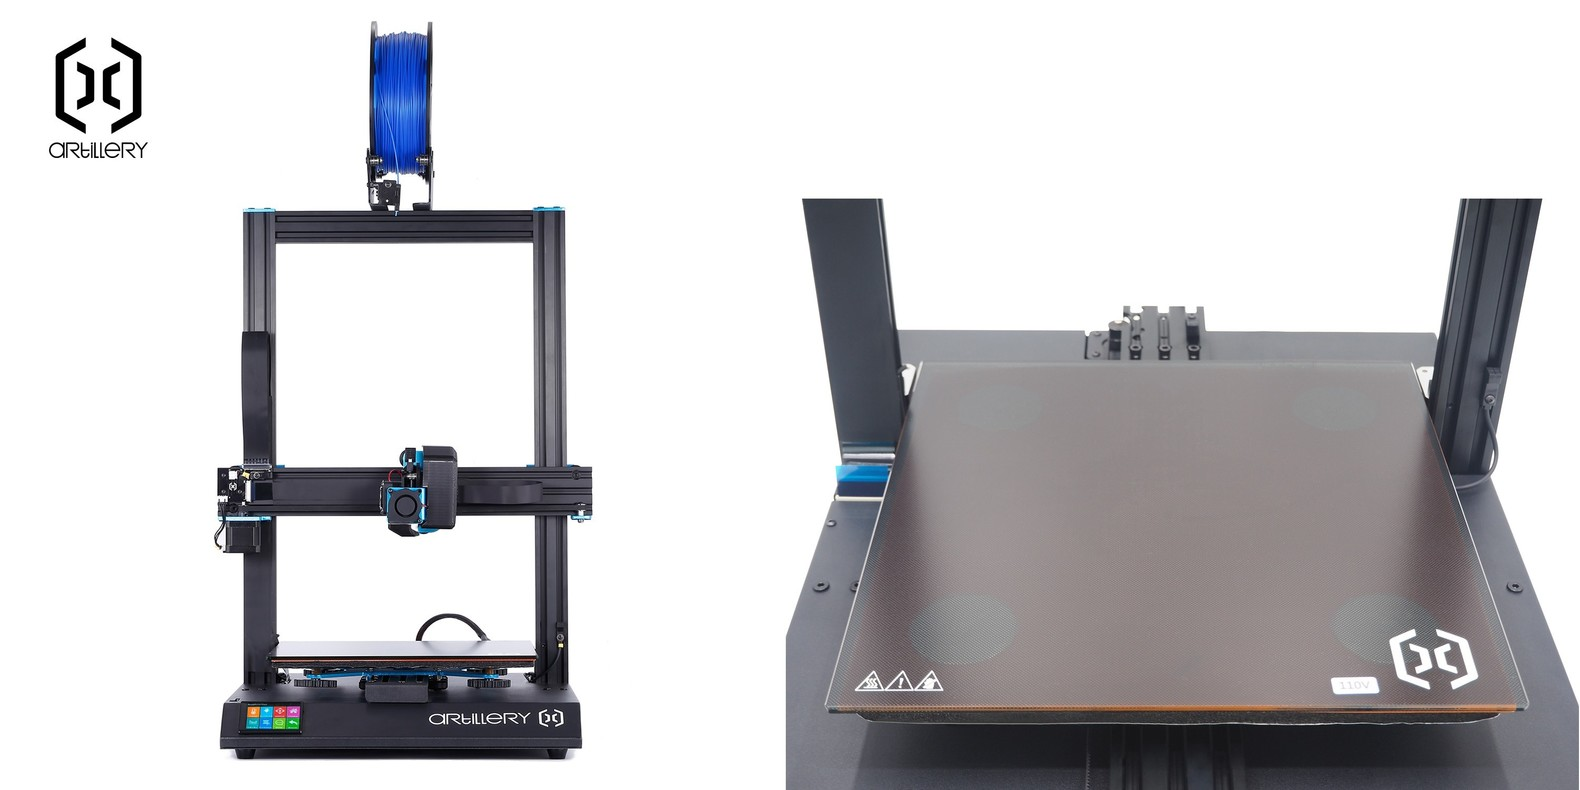 Meet Artillery 3D : The best affordable 3D printers